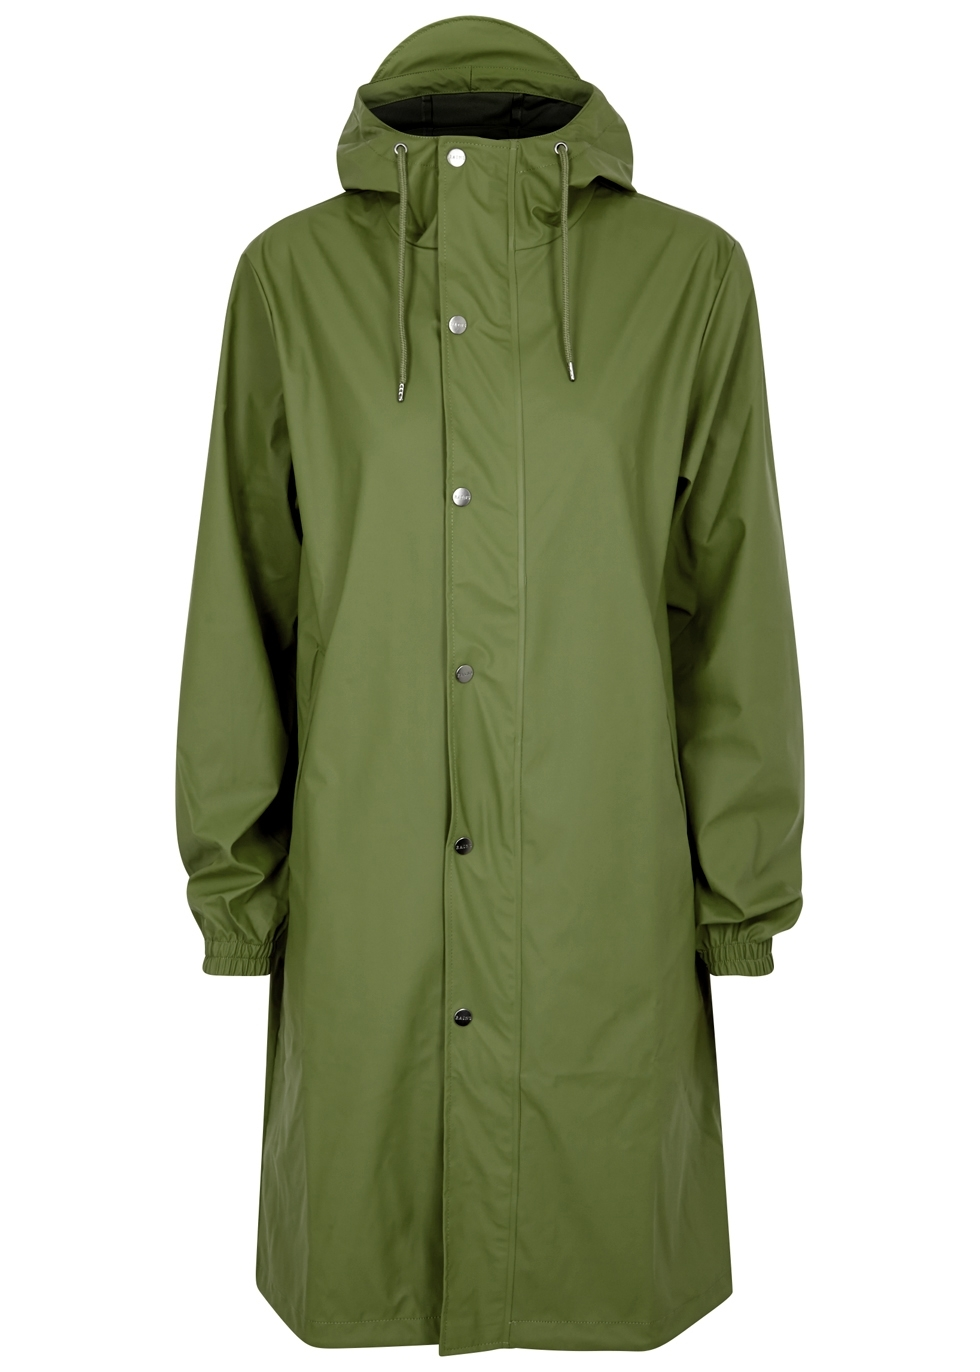 b4afef6edcfa Designer Coats - Women s Winter Coats - Harvey Nichols